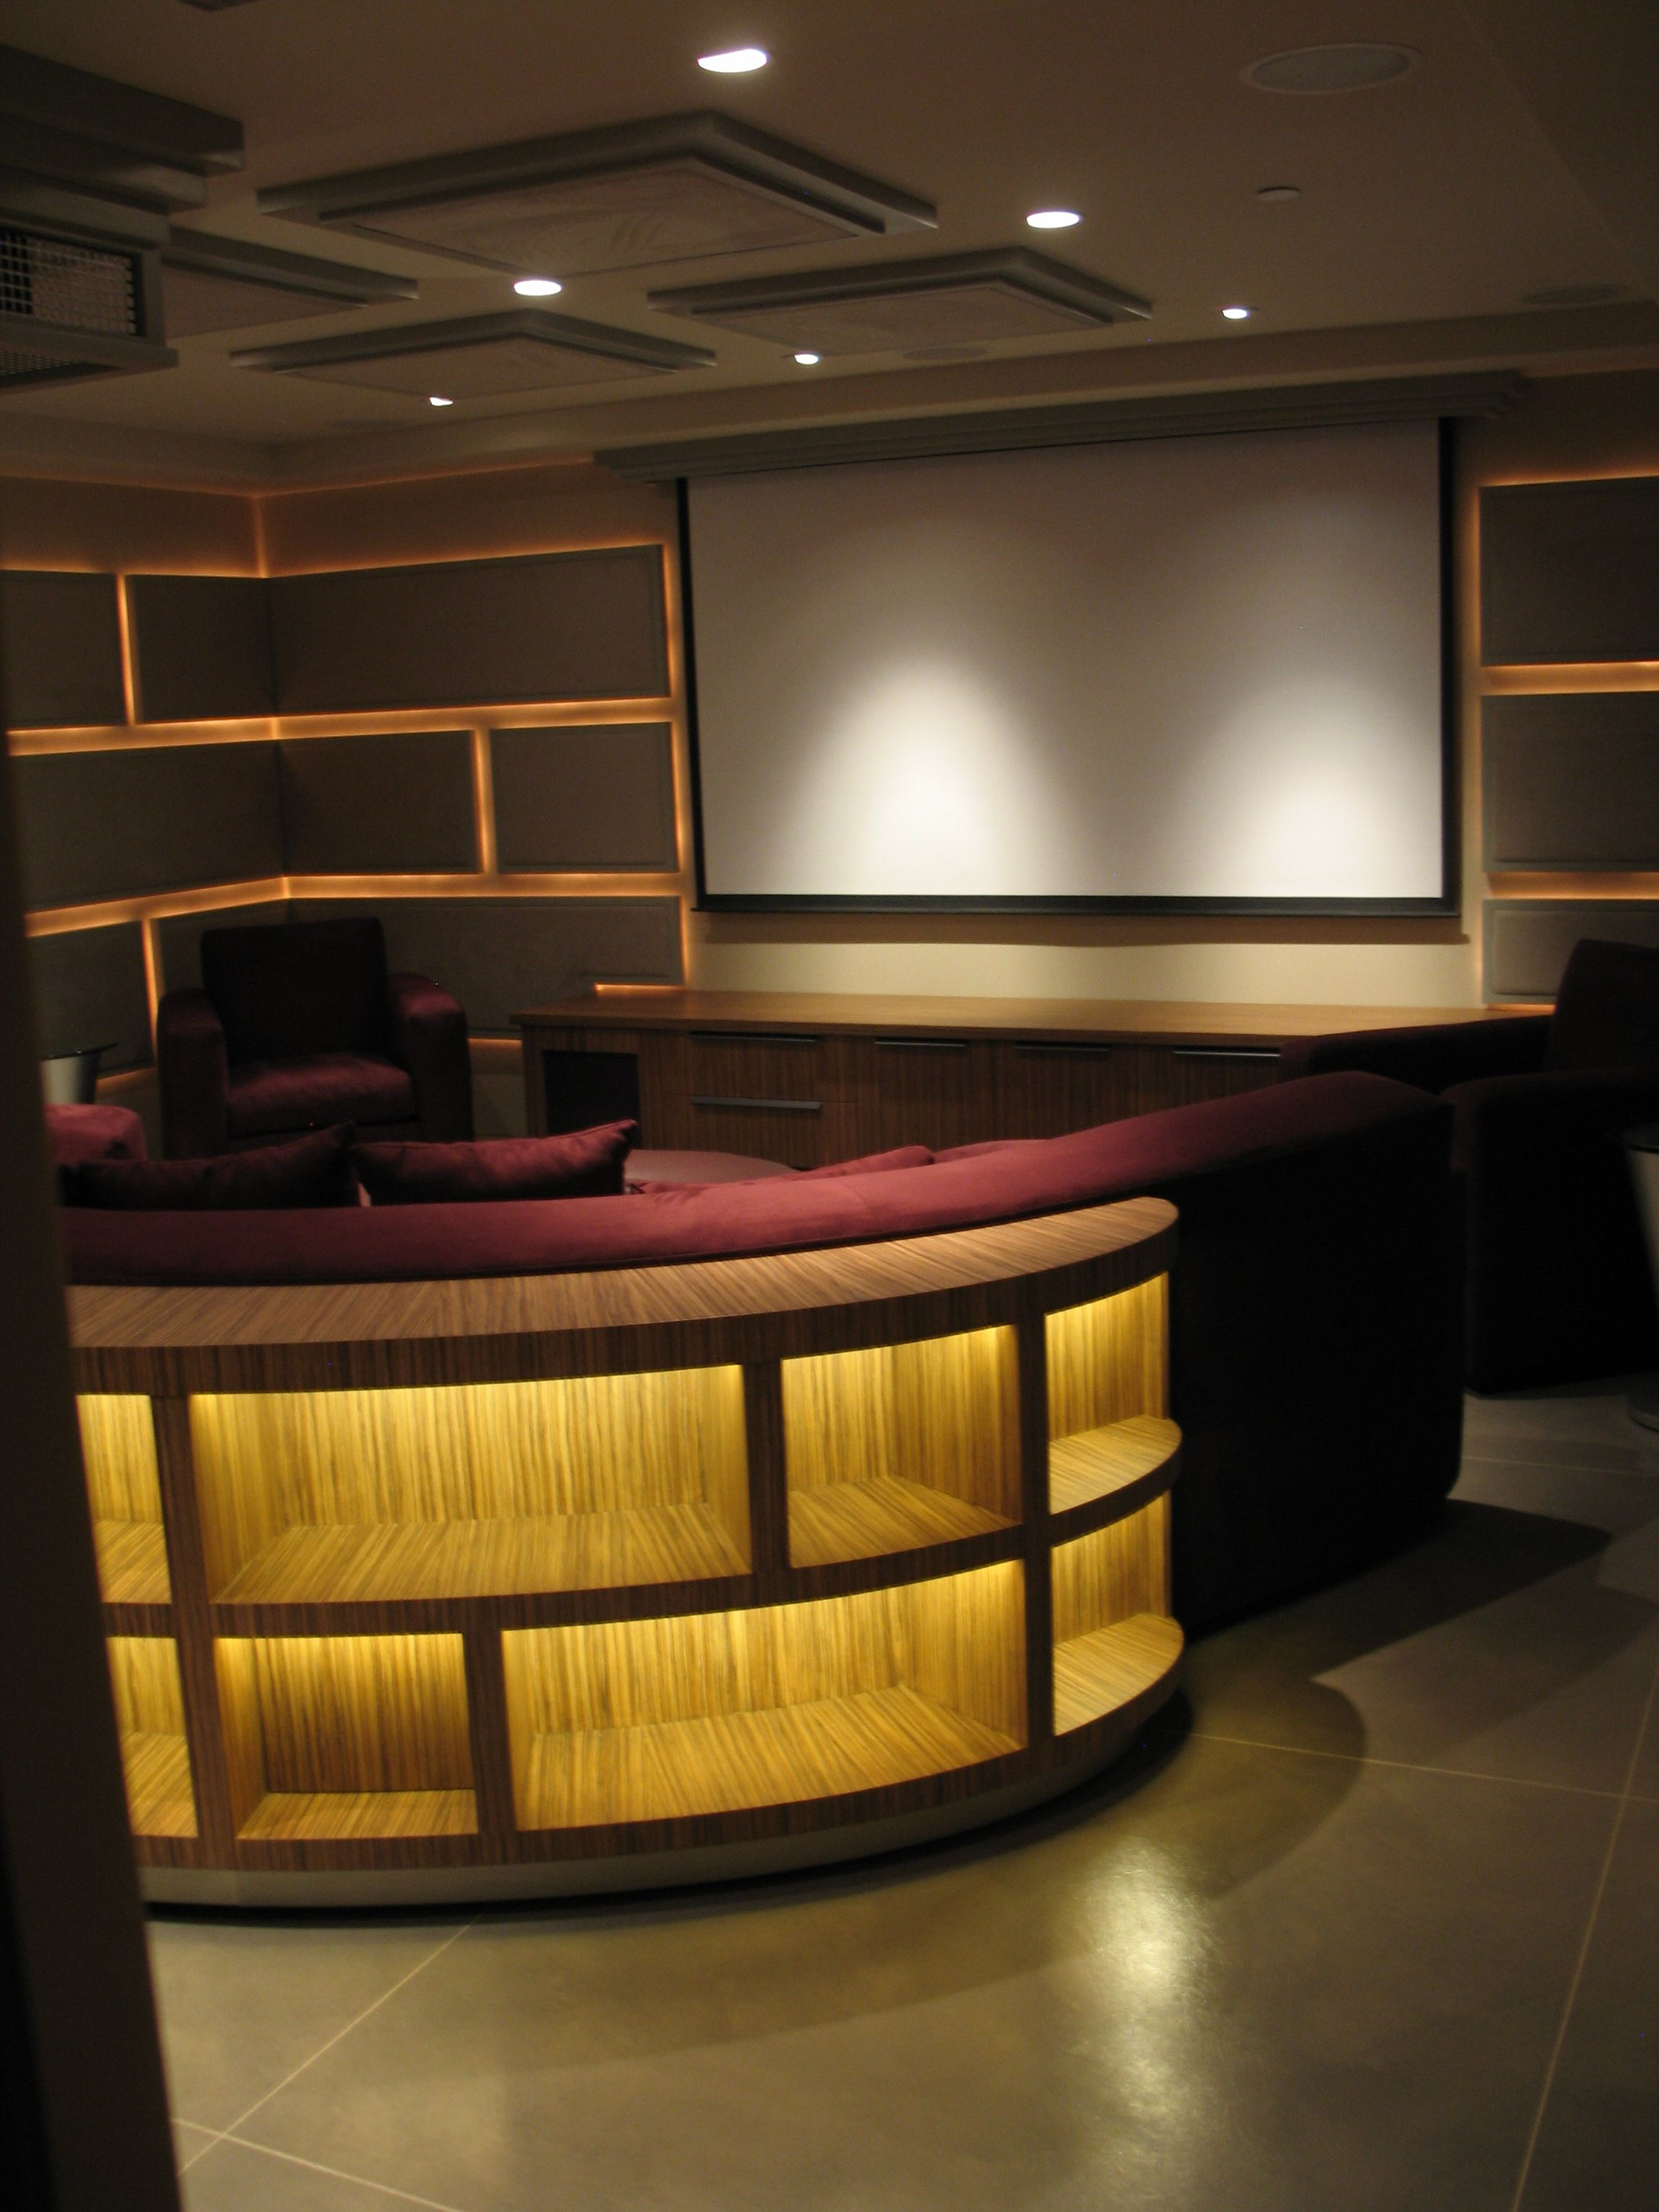 Led Tv Panels Designs For Living Room And Bedrooms: Malibu Theater Room With Acoustic Panels, Lit With LED